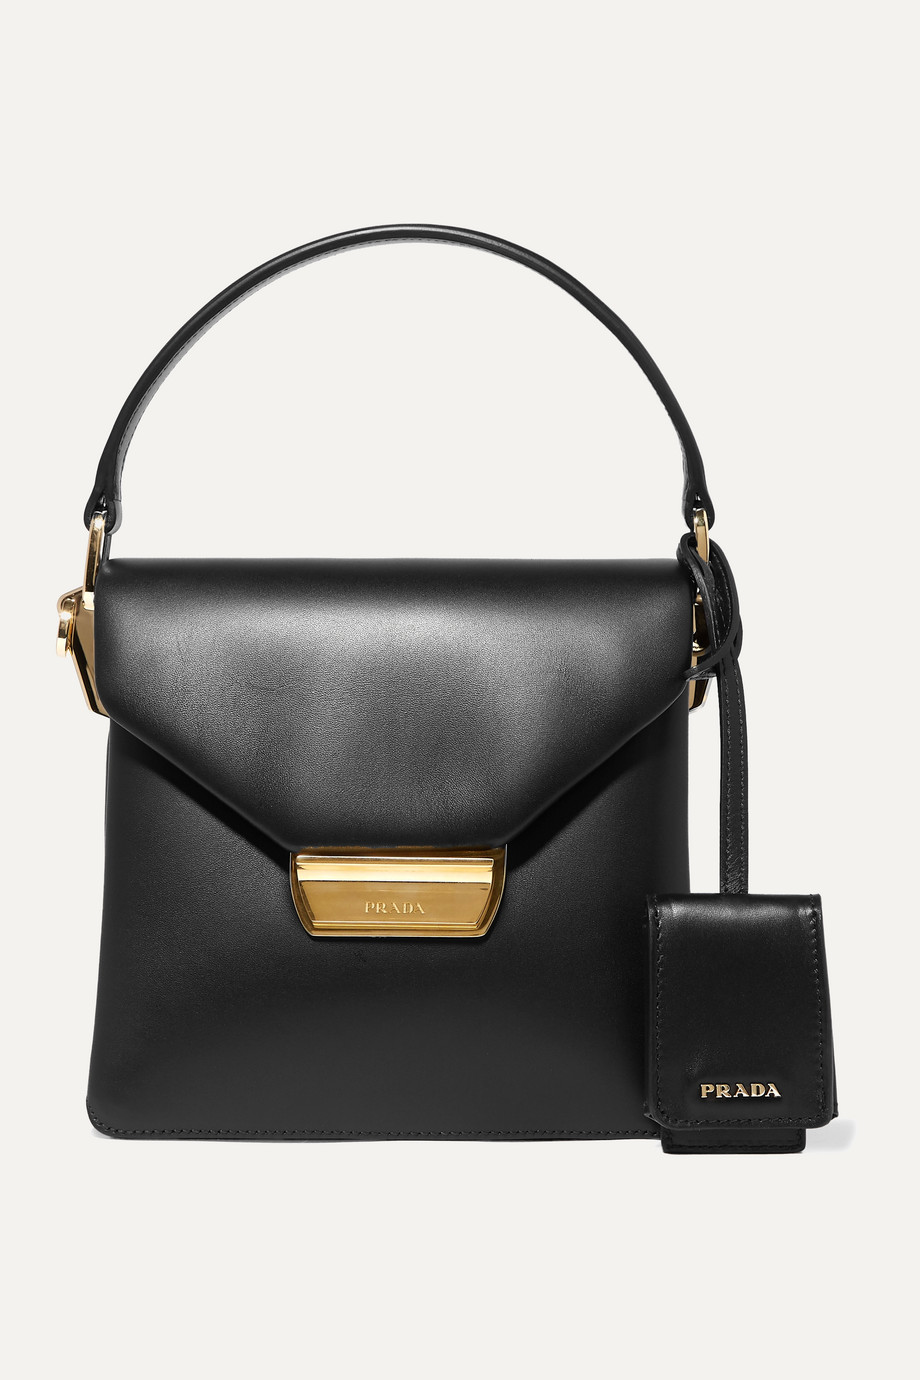 Prada Ingrid small leather tote